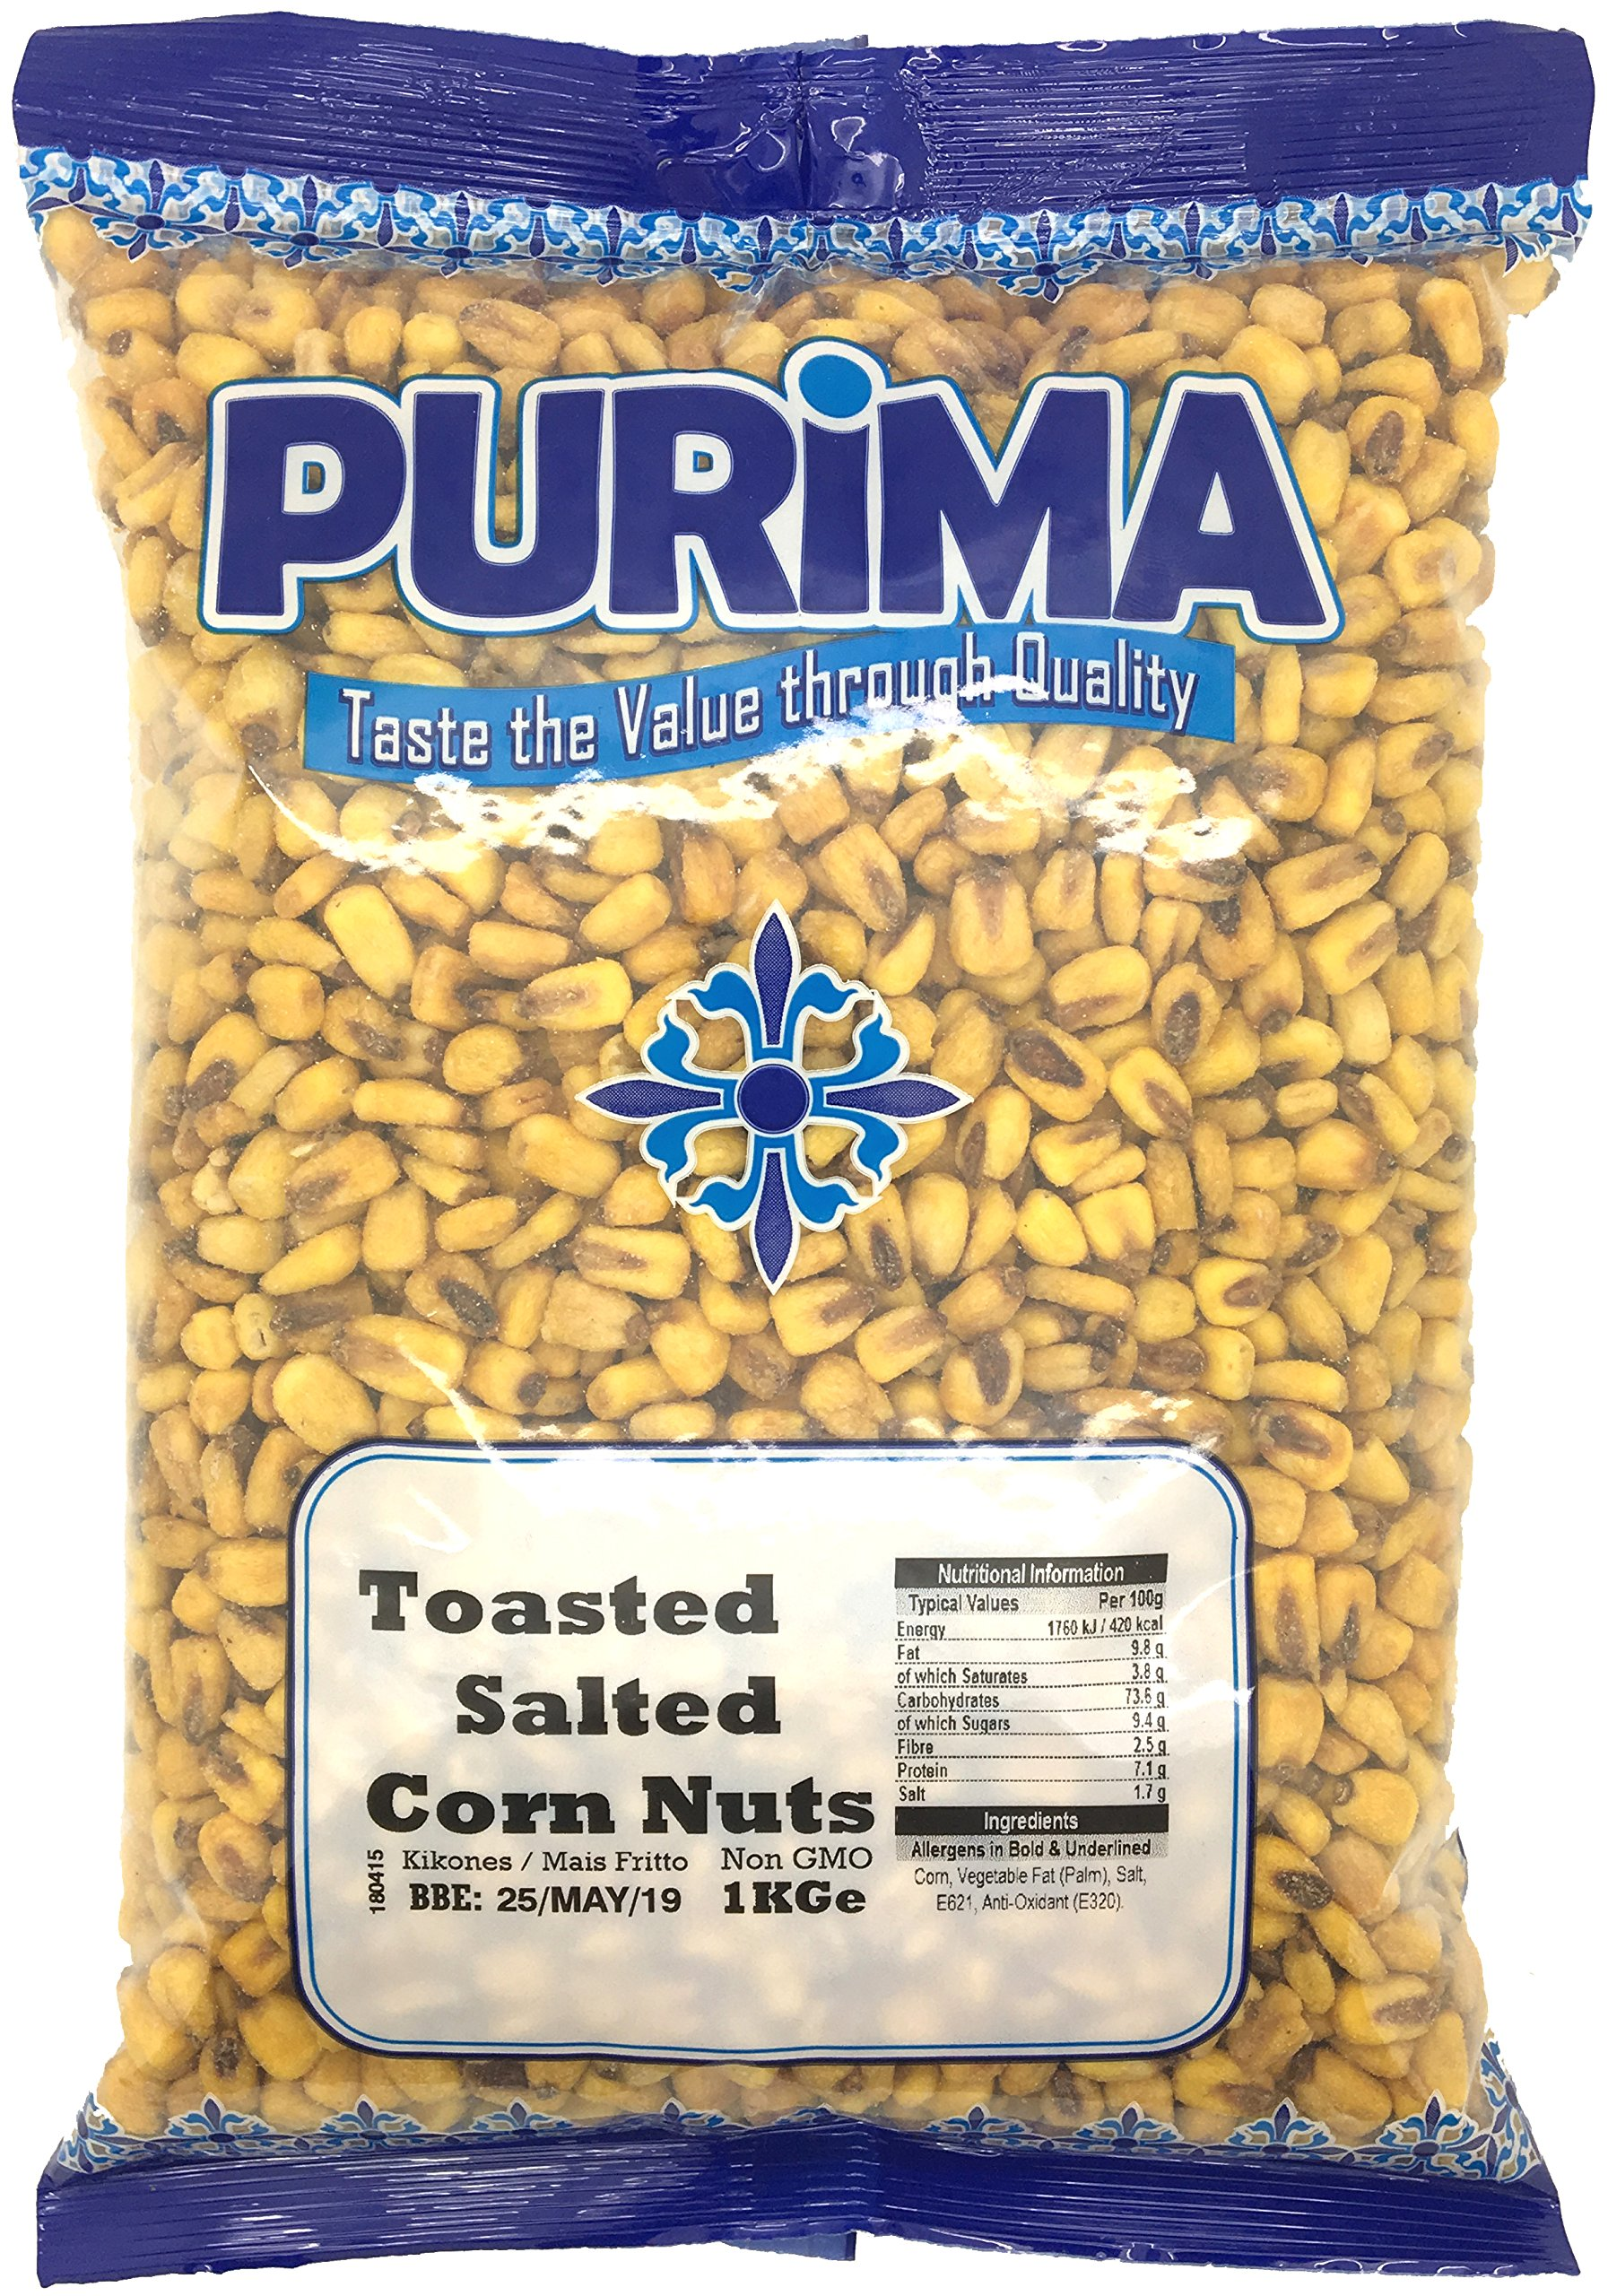 Toasted Corn 1kg – Original Salt Flavour - Roasted Salted Corn Nuts Kernels - Fresh Crispy Crunchy Authentic Spanish Savoury Snack – Ready to Eat - Bulk Bag – Non GMO Vegan Plant Based Snacks - PURIMA